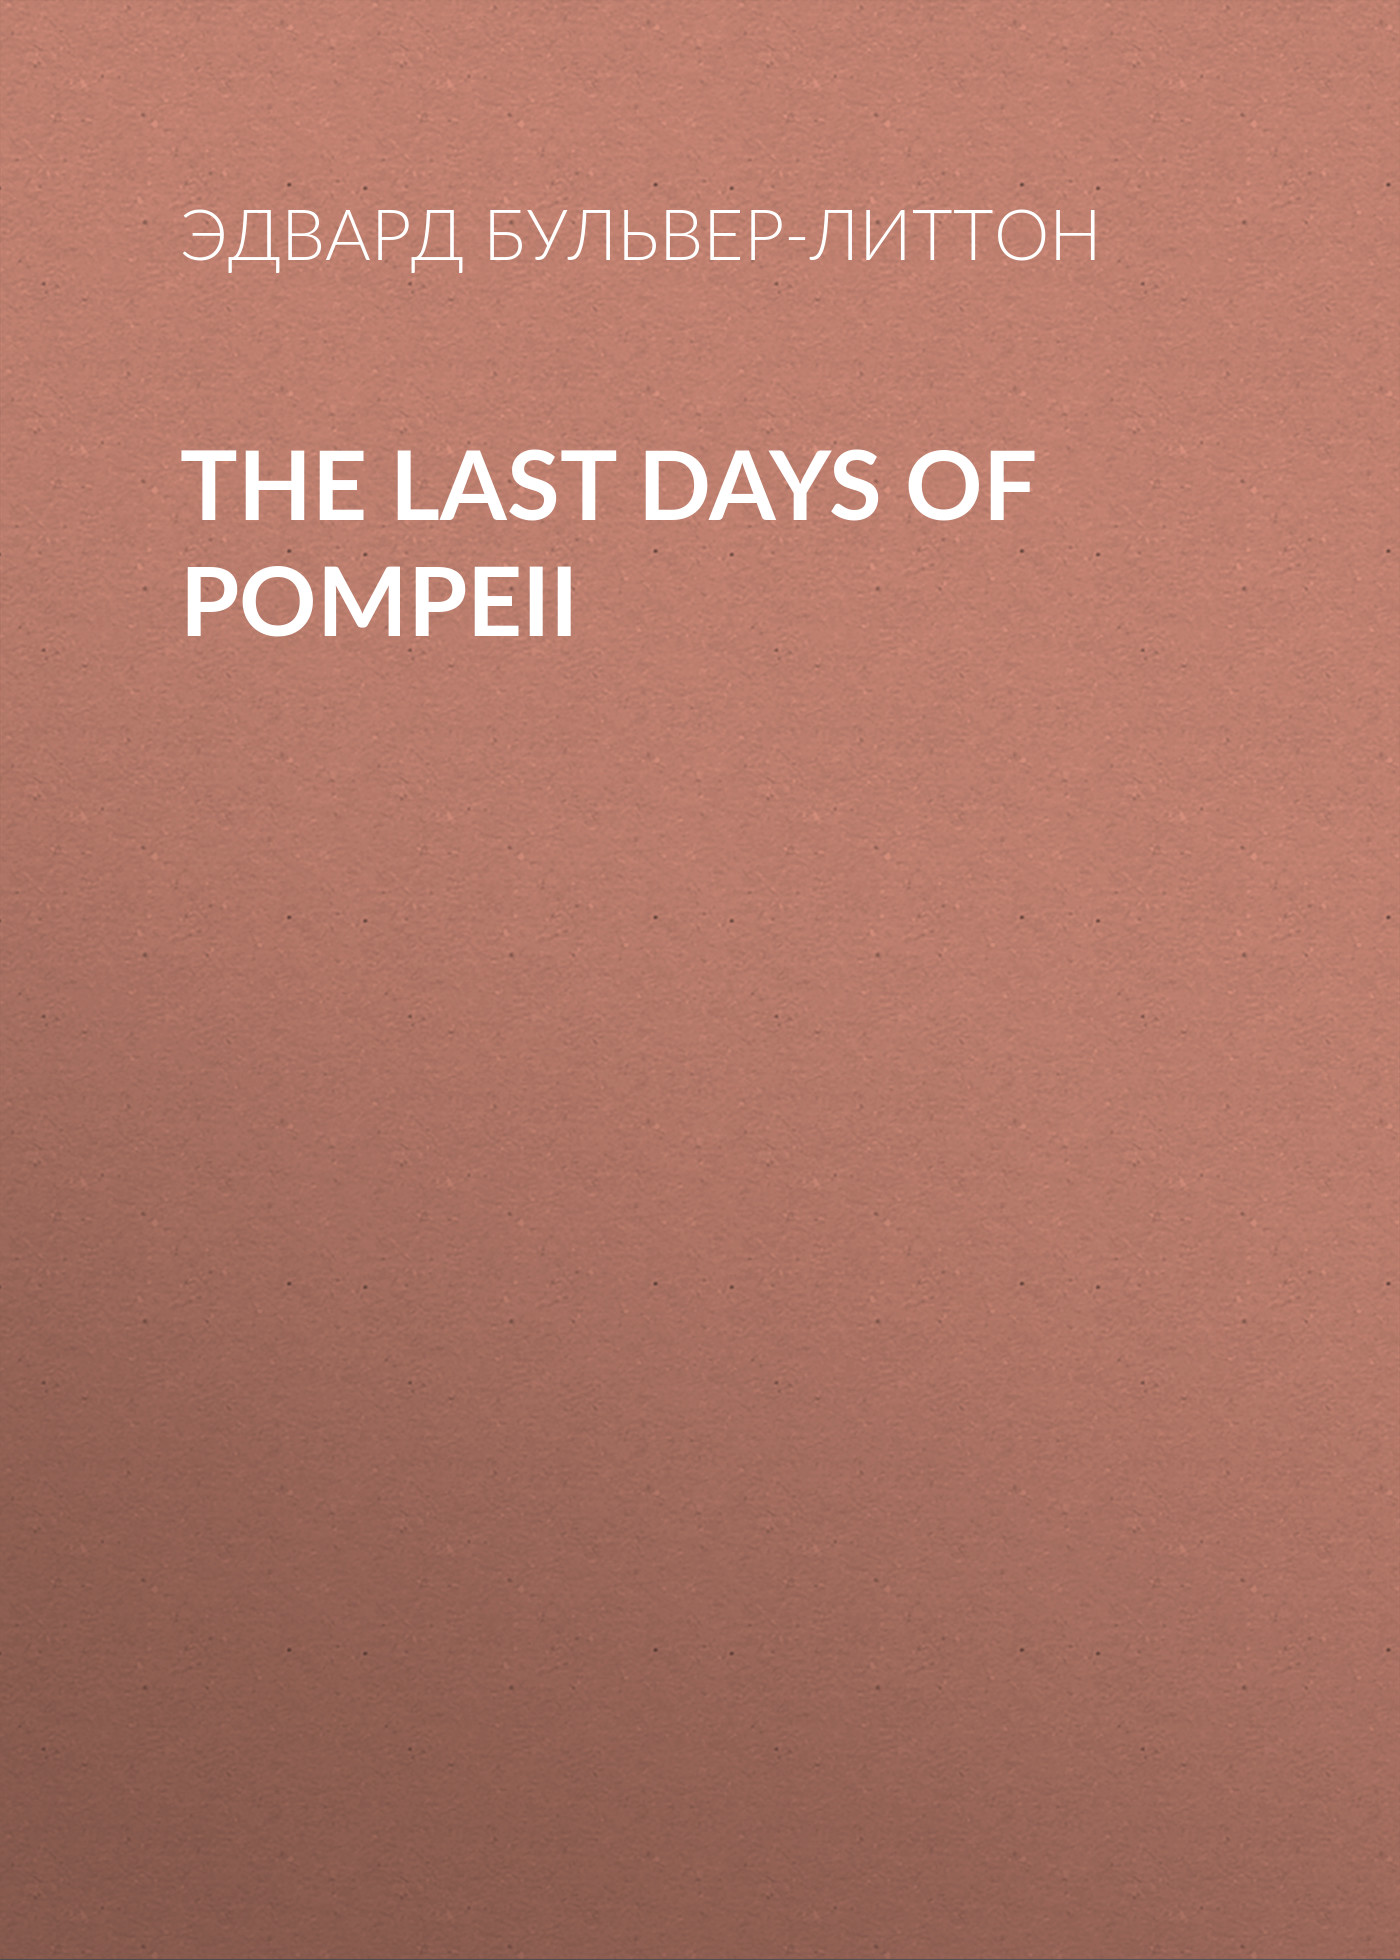 Фото - Эдвард Бульвер-Литтон The Last Days of Pompeii hereward end of days